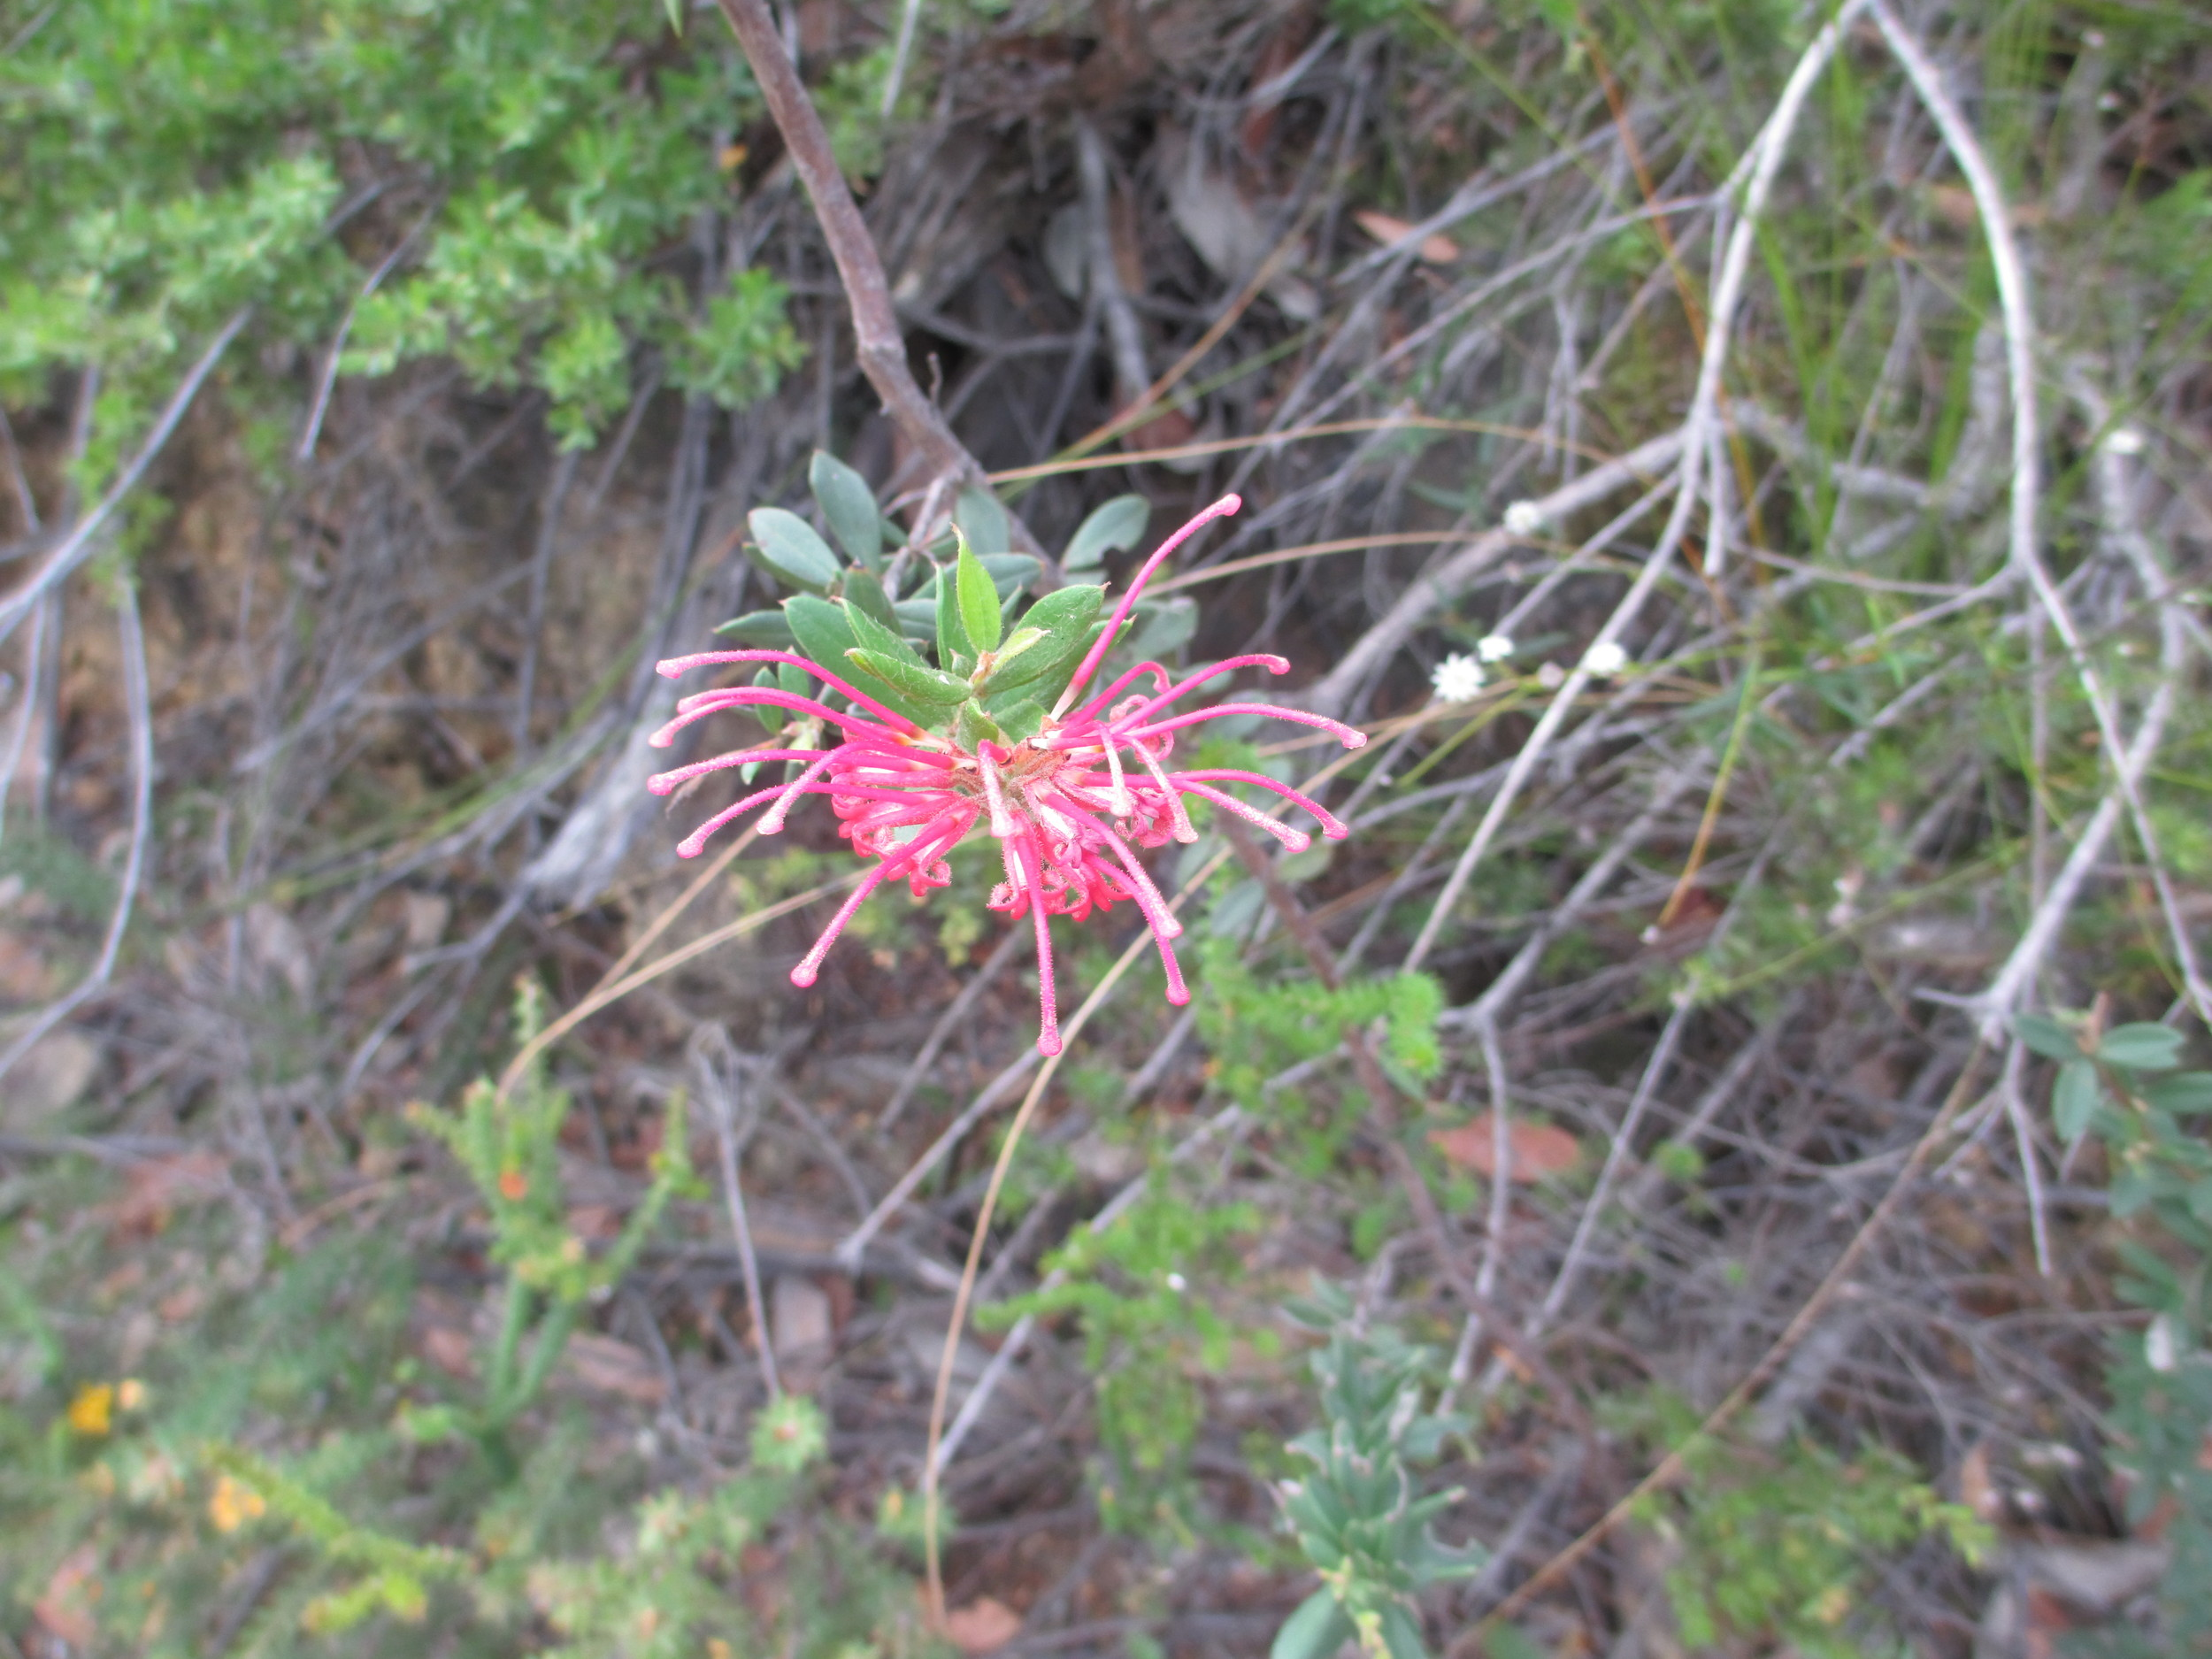 Looks like it's adapted for butterflies. We have seen many butterflies, but no hummingbirds. Are they here?